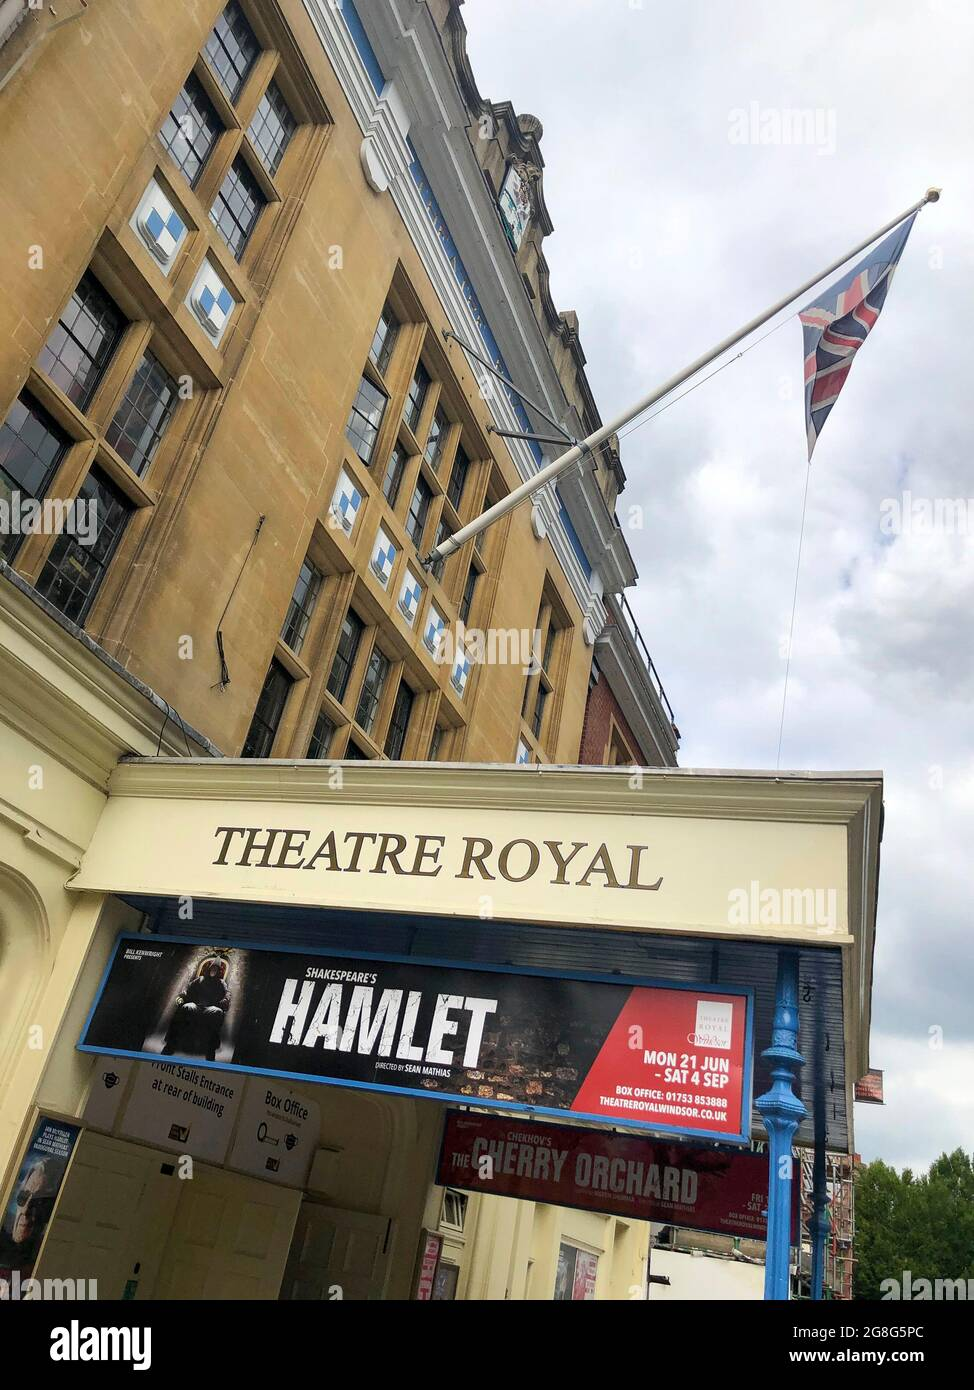 exterior of the Theatre Royal Windsor, England displaying a poster for HAMLET by Shakespeare starring Sir Ian McKellen as the Danish Prince, running from June to September 2021. Directed by Sian Mathias and produced by Bill Kenwright this is a reimagined age, colour blind and gender blind production. It also stars Jonathan Hyde as Claudius,  Jenny Seagrove as Gertrude, Frances Barber as Polonius and Alis Wyn Davies as Ophelia with set design by Lee Newby, costumes by Loren Epstein, wigs & make-up by Susanna Peretz  and lighting by Zoe Spurr . Stock Photo